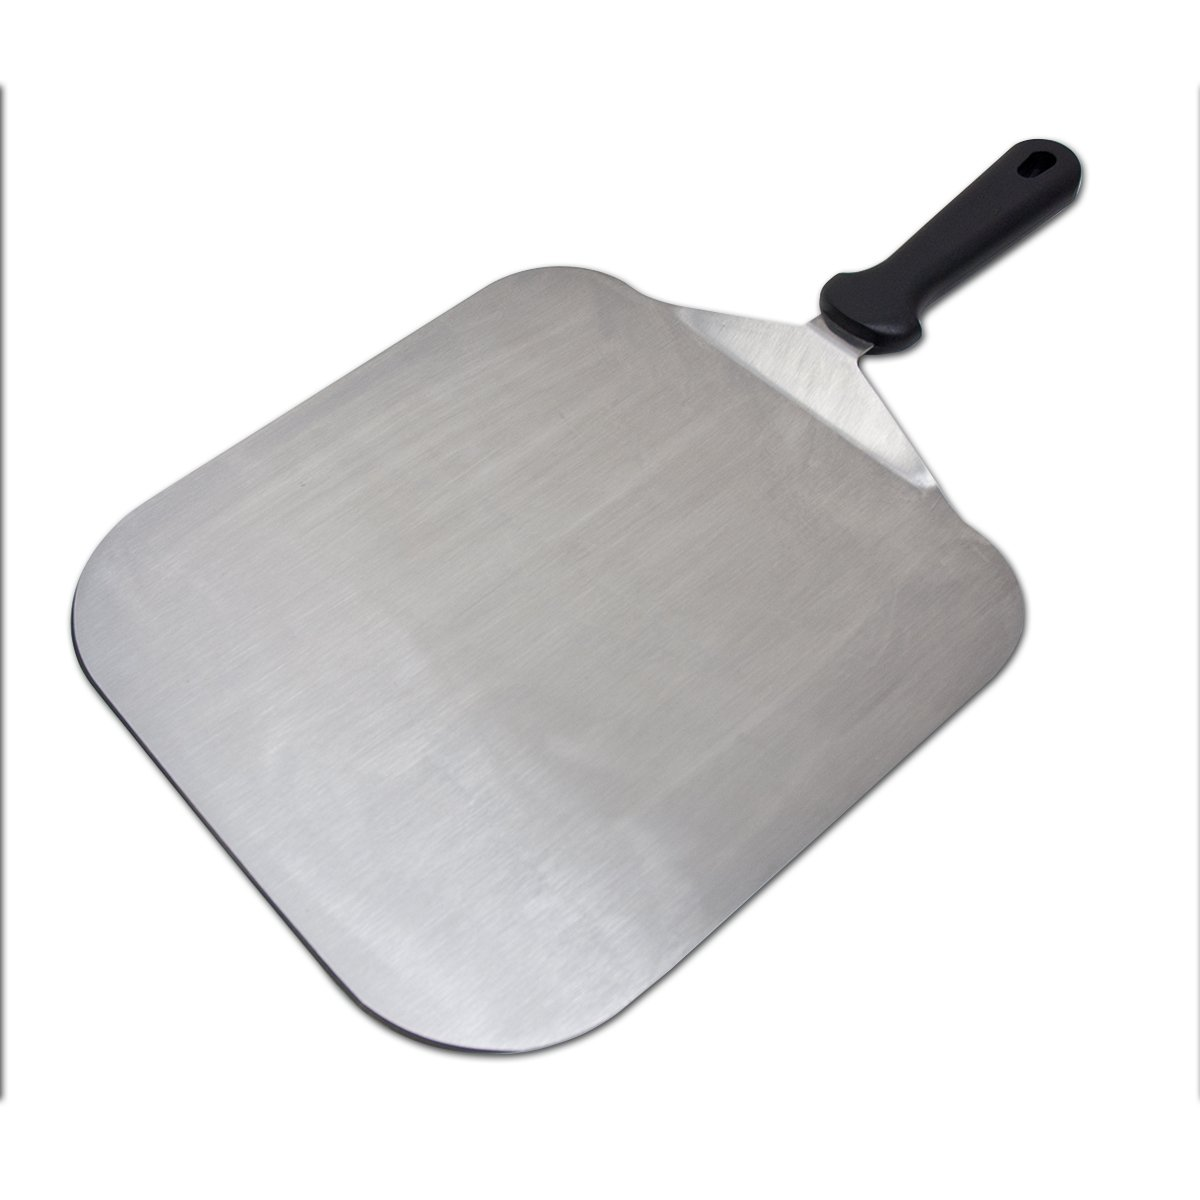 Fat Daddio's Pizza Peel and Cake Lifter Fat Daddio's SPAT-PEEL